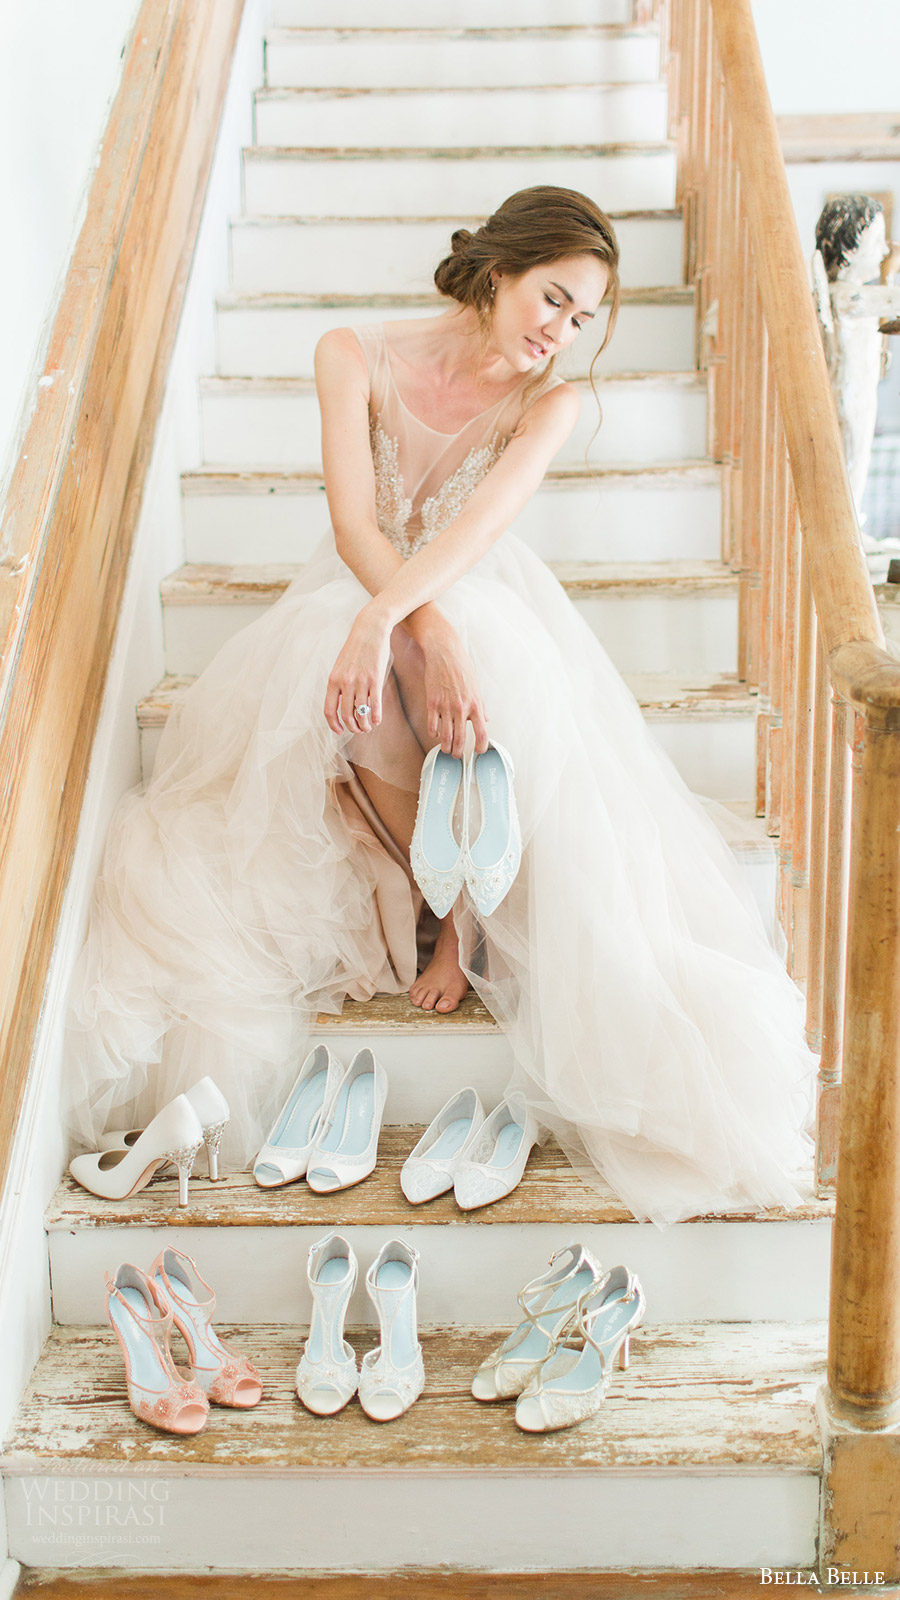 bella belle shoes 2016 eternal lookbook rachel may photography watters wtoo gown